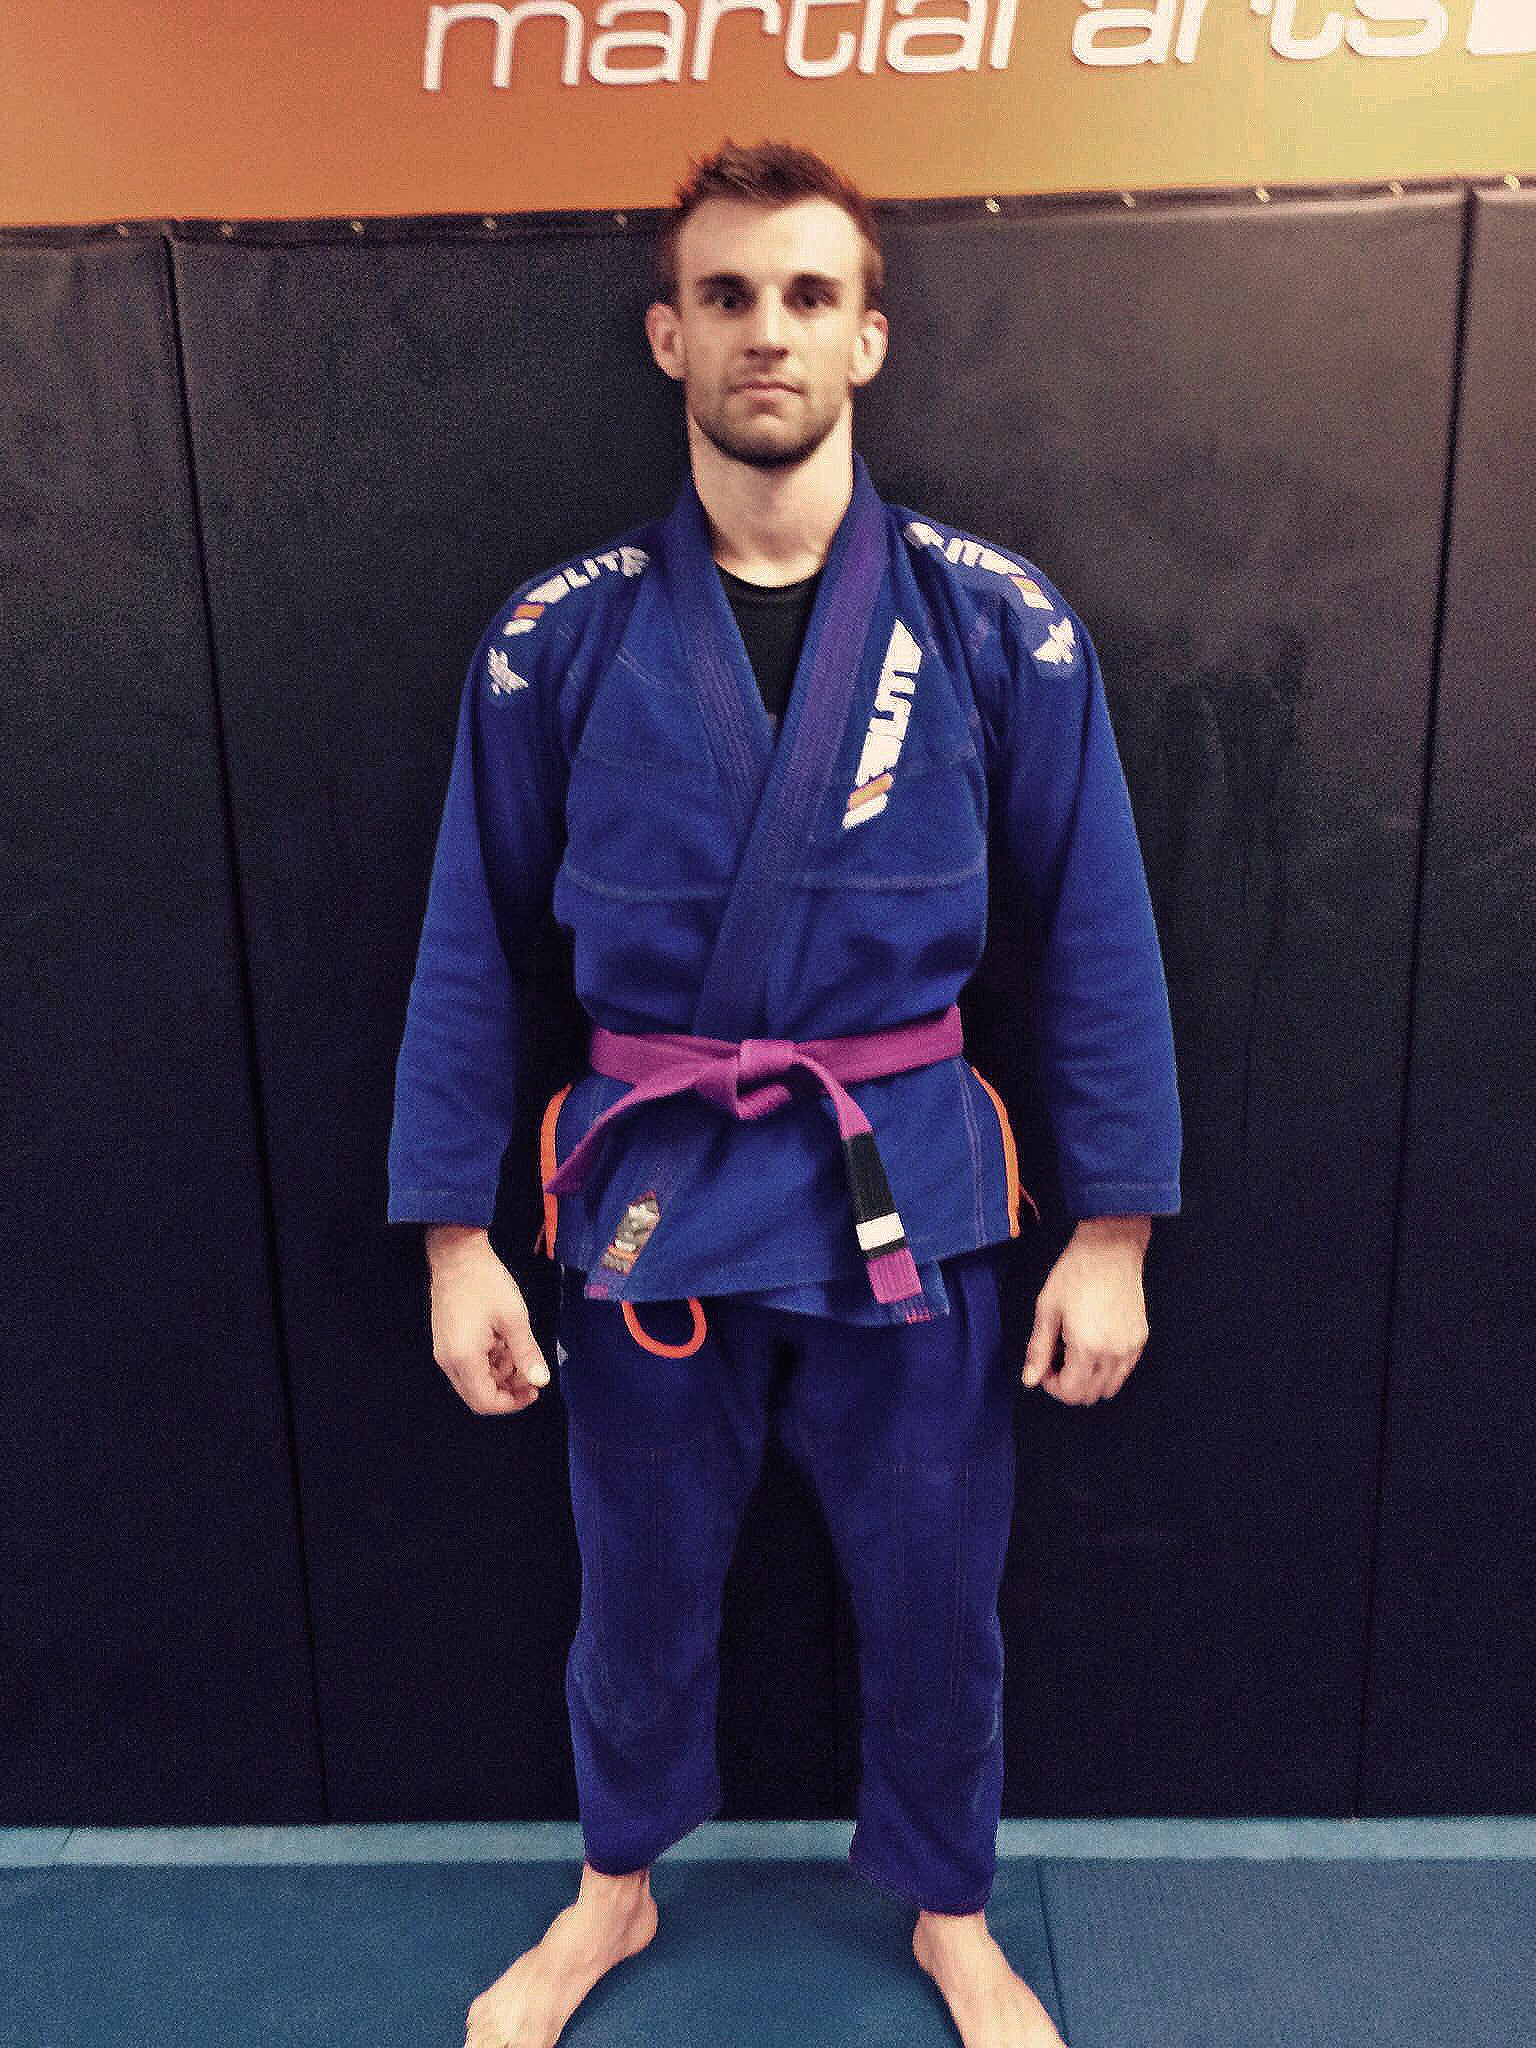 Elite sports Team Elite BJJ Ryan Pasfield image1.jpeg